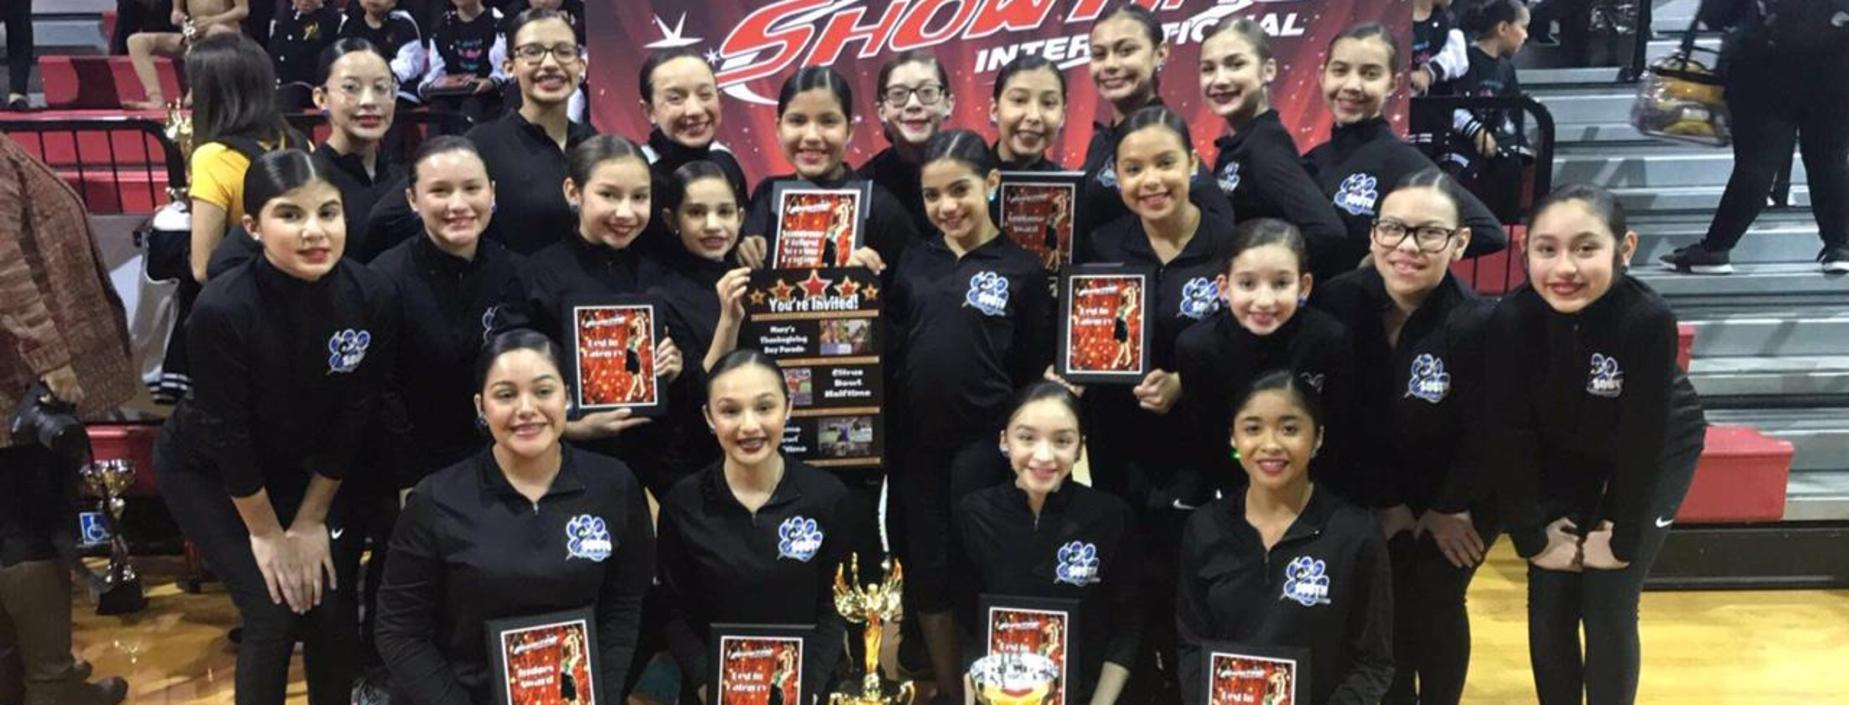 SMS Rebcadettes at ShowTime International South Texas Festival